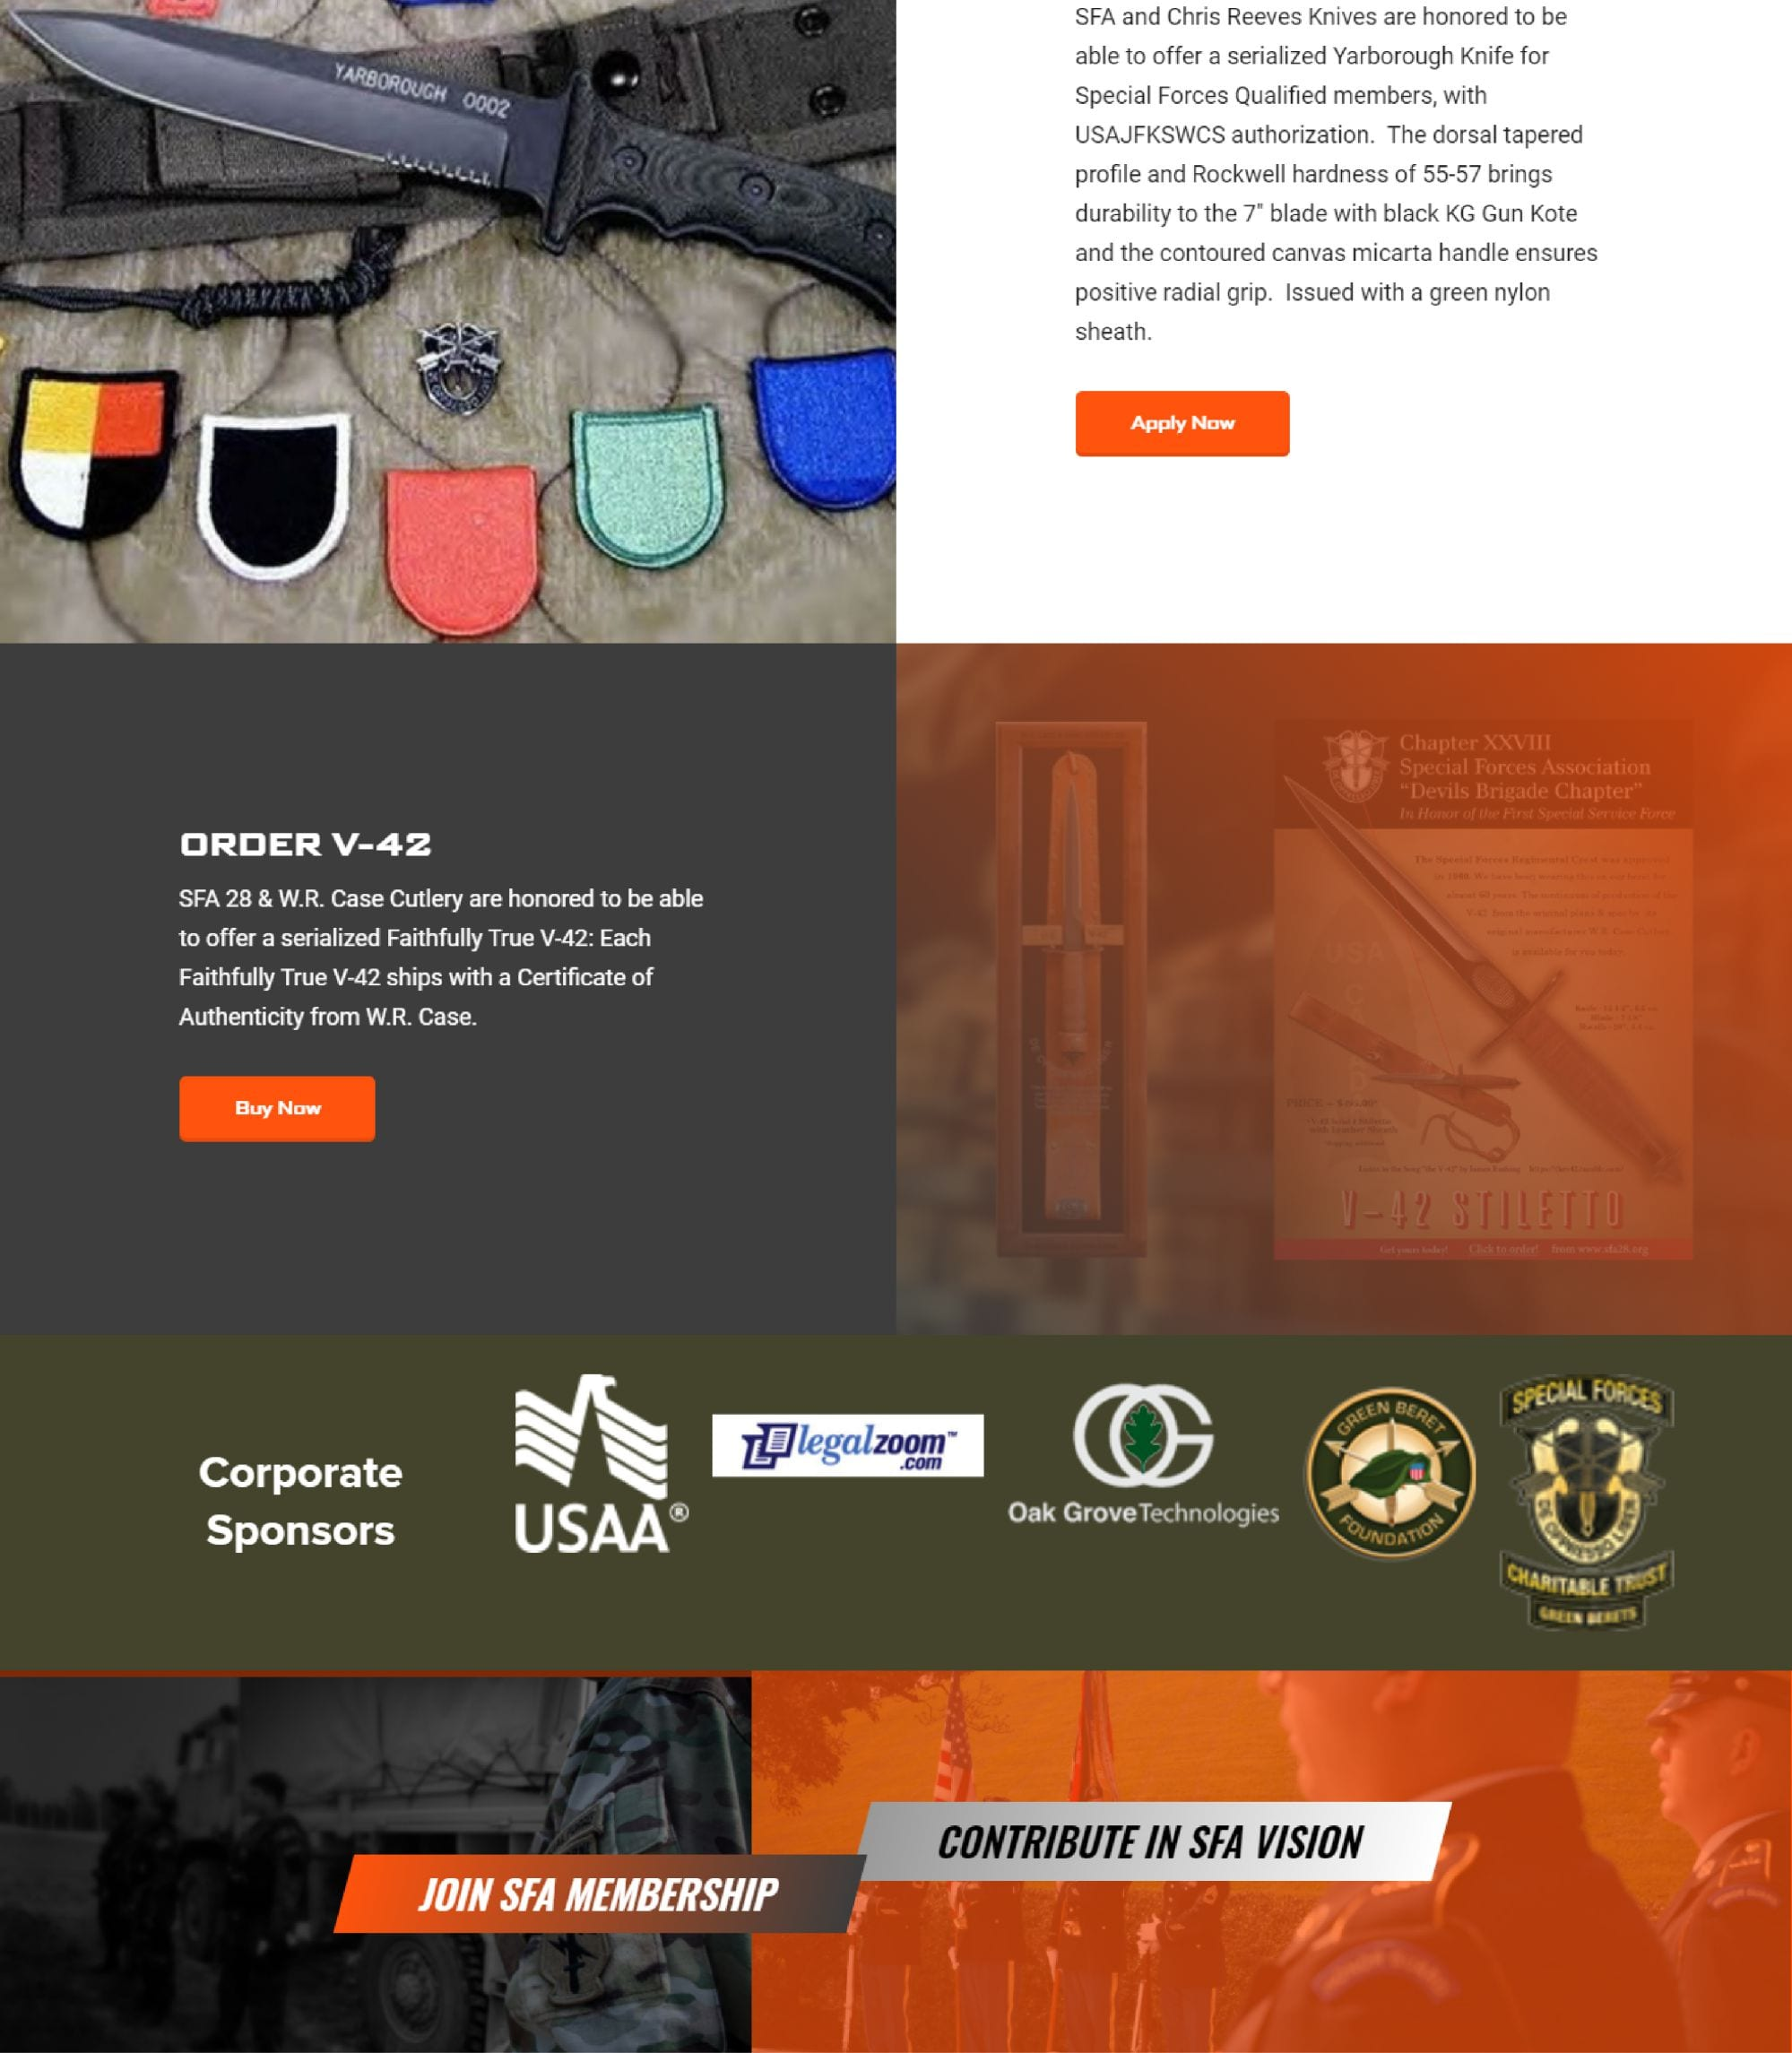 special forces association website, corporate sponsors